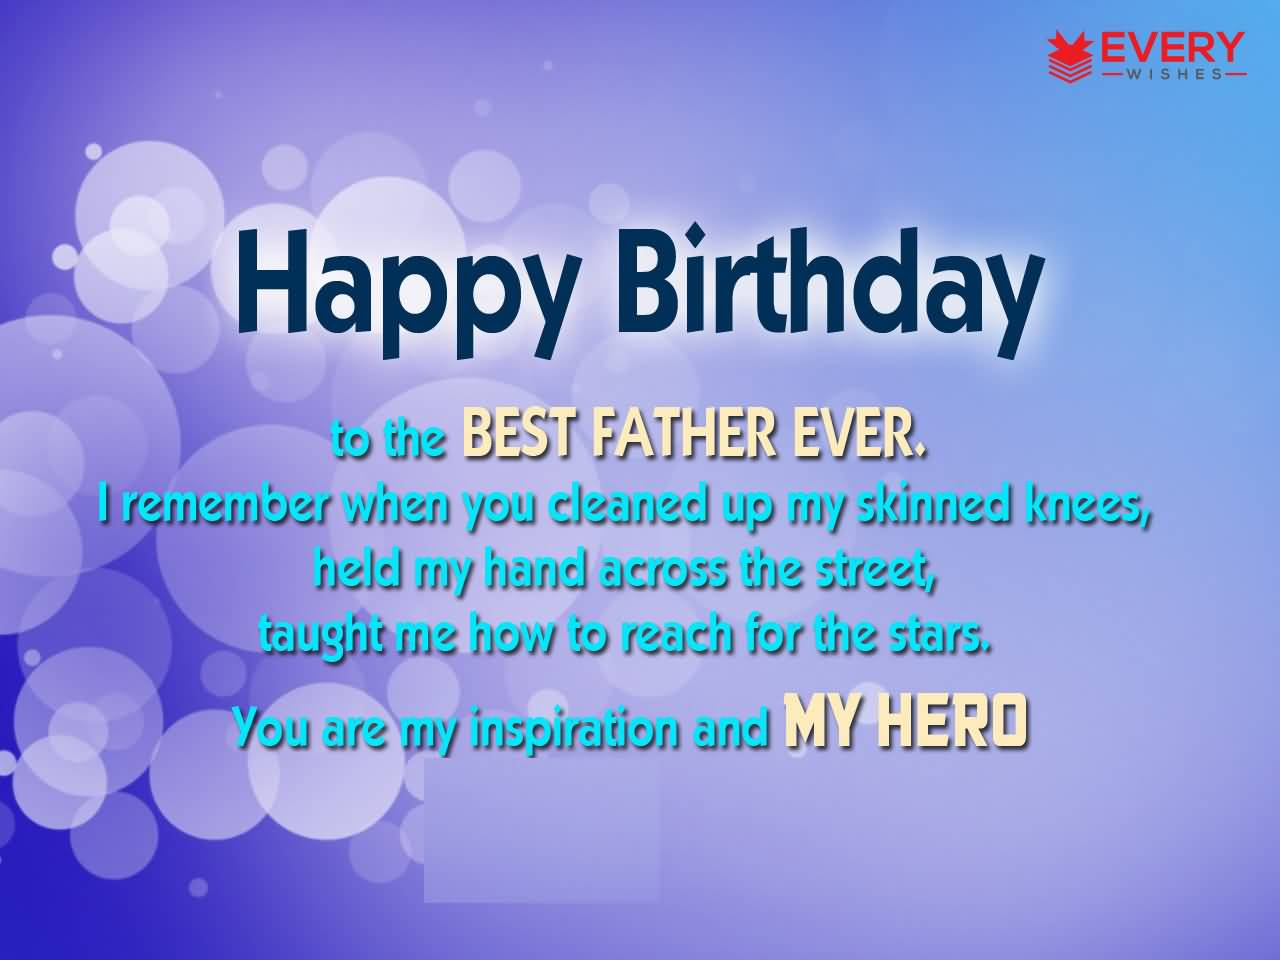 Happy birthday to the best Father ever inspirational message